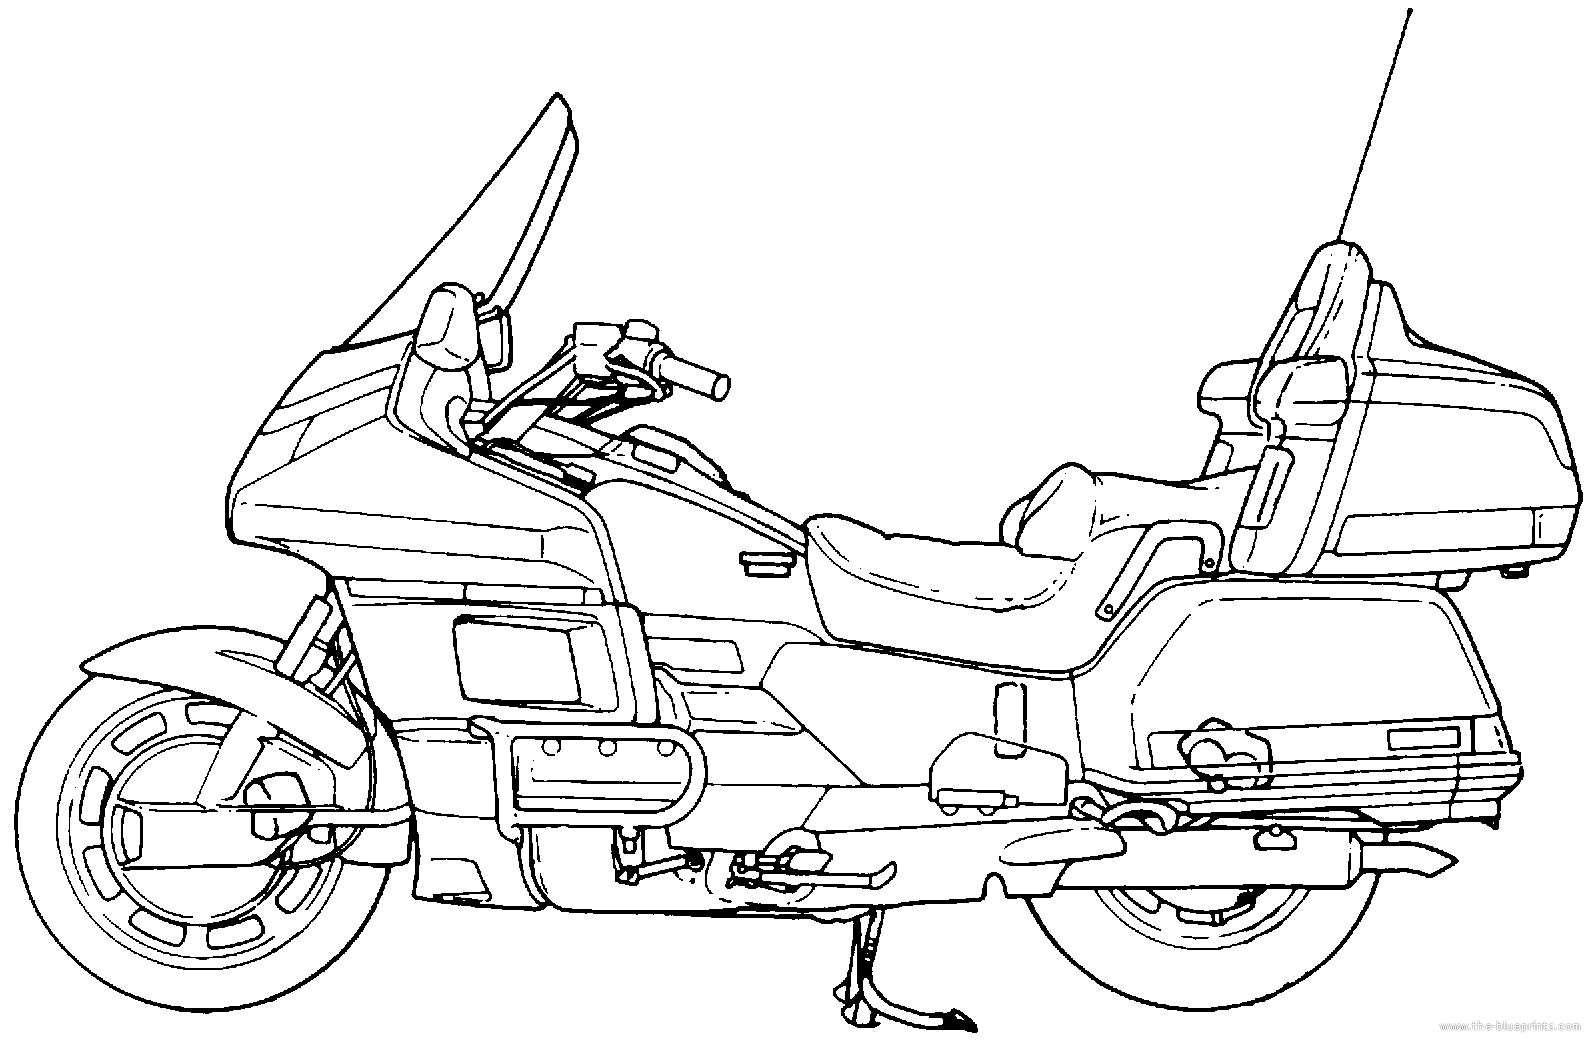 1992 Gl1500 Wiring Diagram Honda Motorcycle Diagrams Schematic Goldwing Schematics Enthusiast U2022 Gearbox